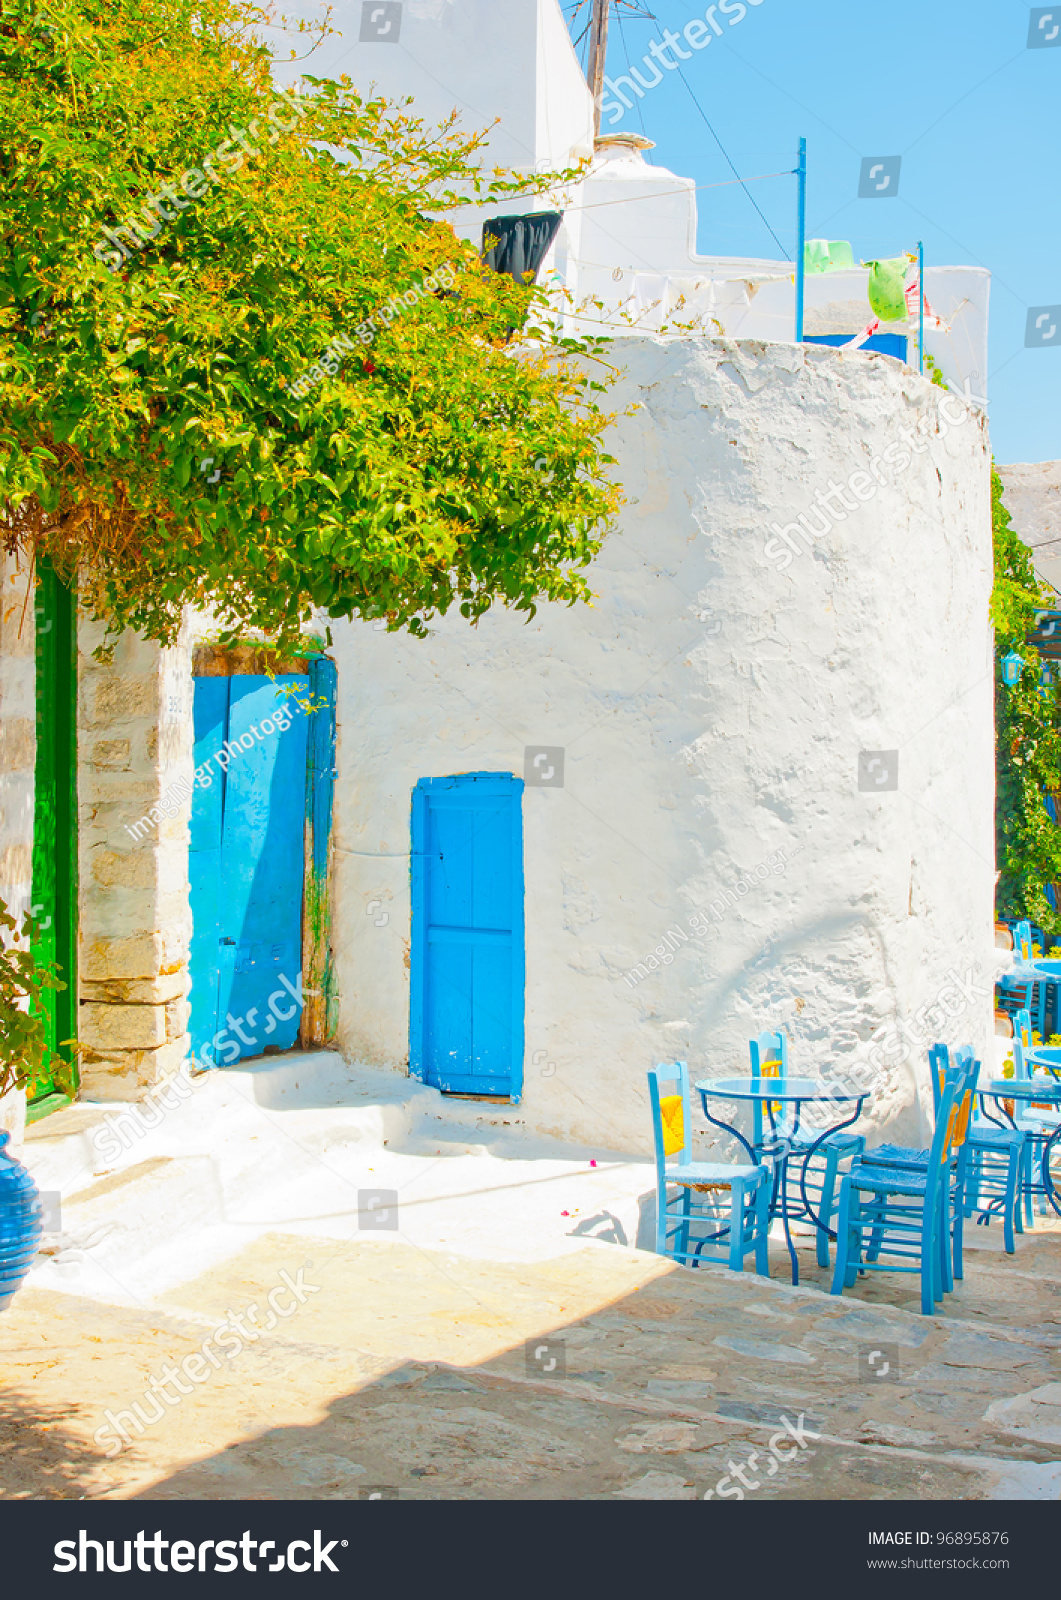 Old beautiful traditional house in chora the capital of amorgos island - Beautiful Stone Made Road With Old Traditional Houses And Traditional Iron Made Blue Coffee Tables And Chairs In Chora The Capital Of Amorgos Island In